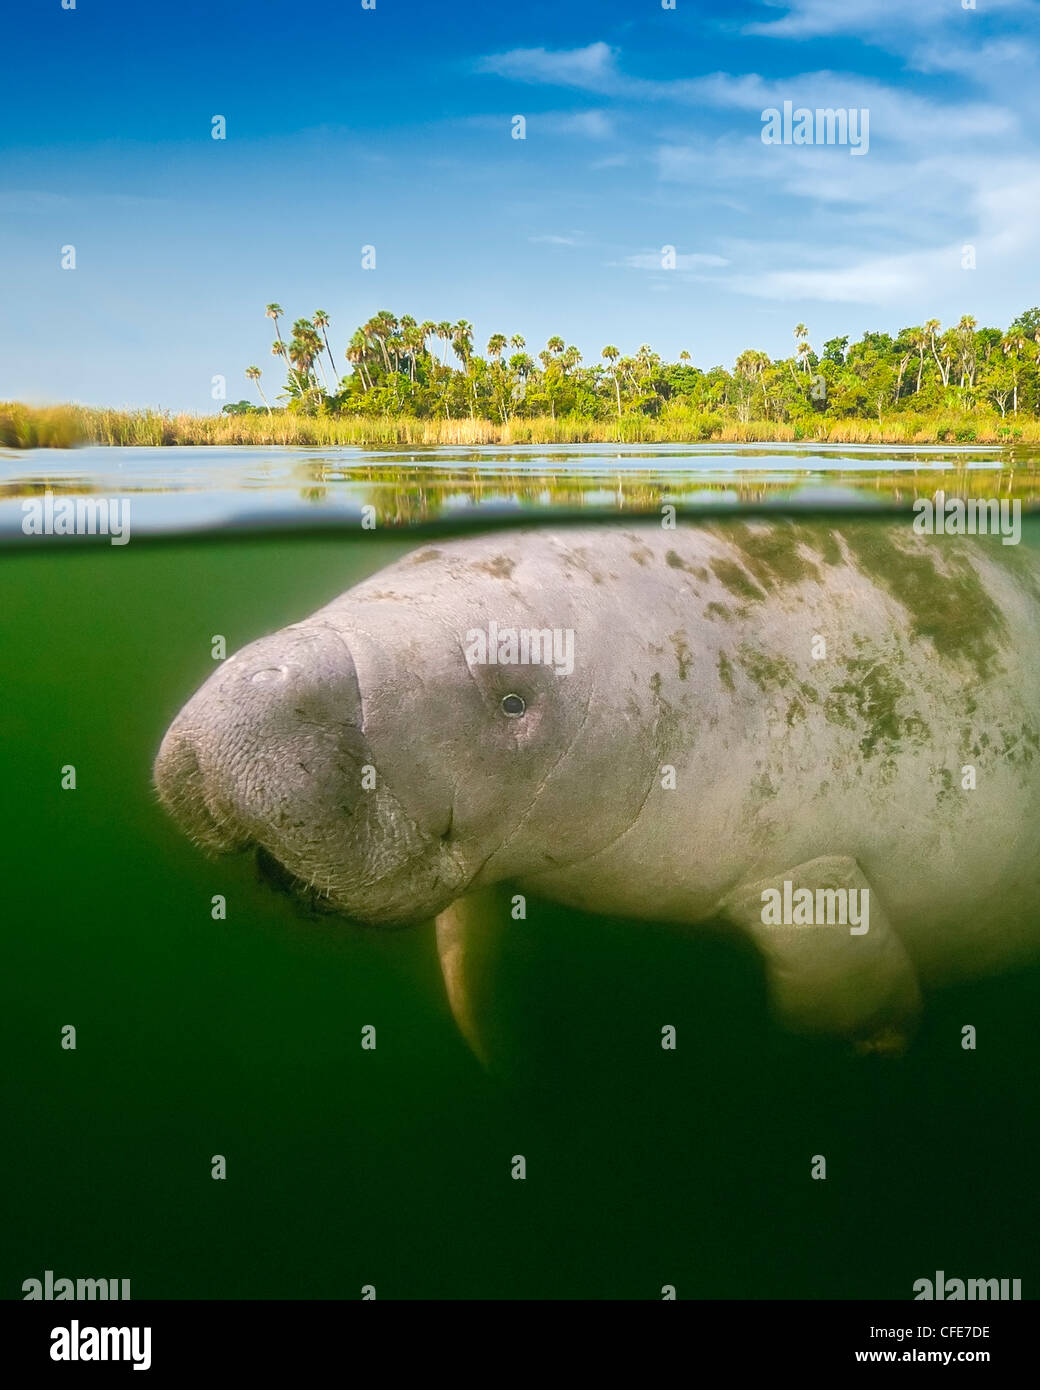 Over/under of Florida manatee calf - Stock Image